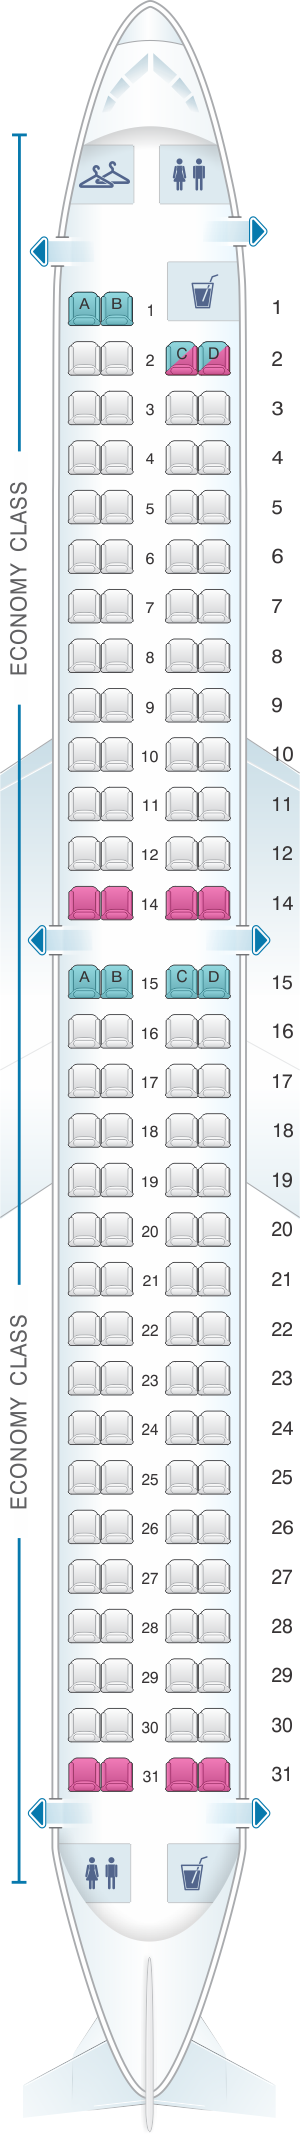 Seat map for Flybe Embraer ERJ-195